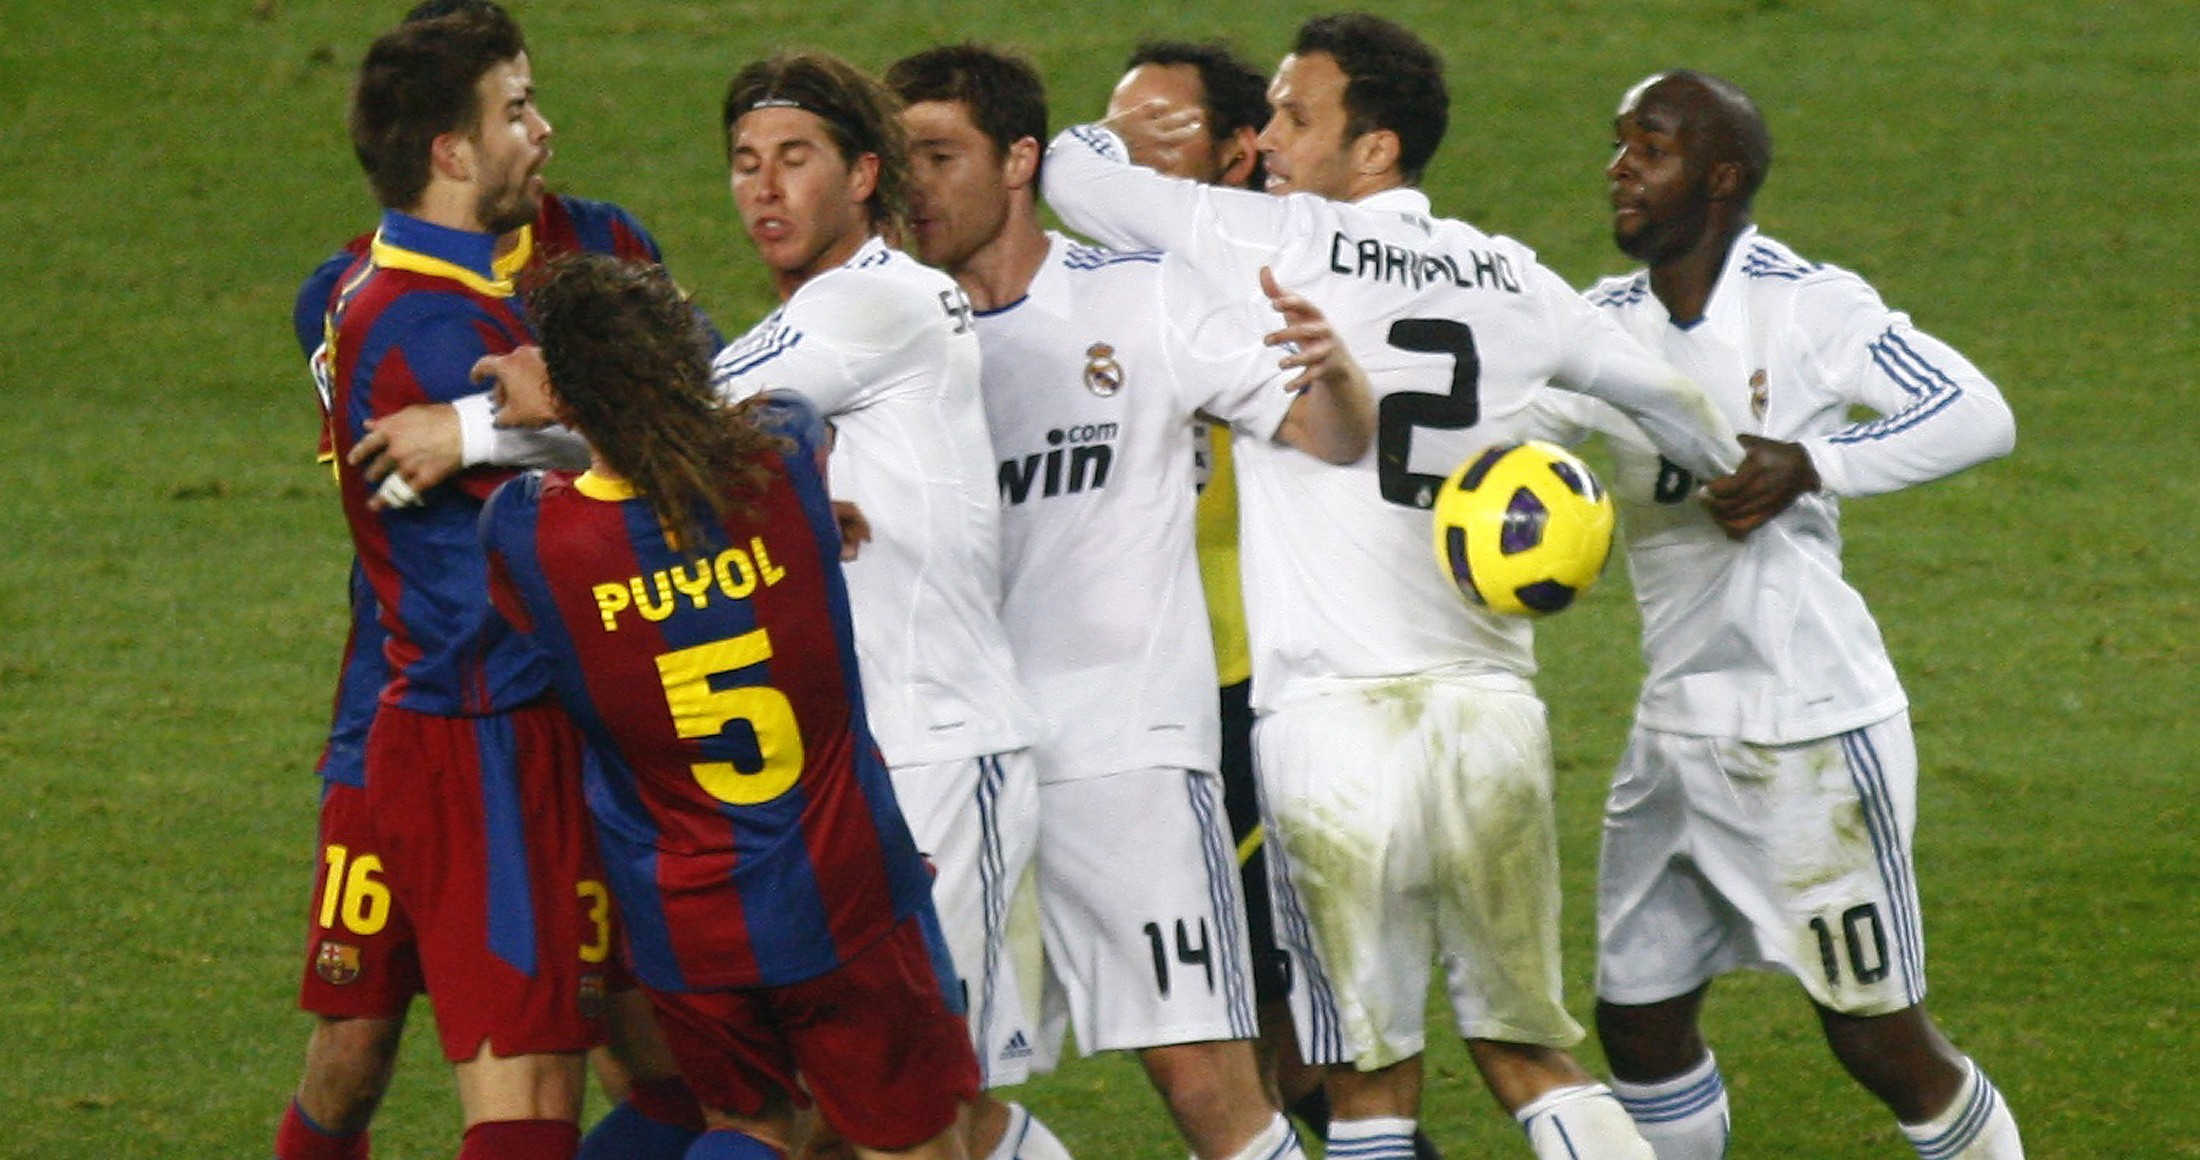 Real Madrid's Ramos pushes Barcelona's Puyol during their Spanish first division soccer match in Barcelona